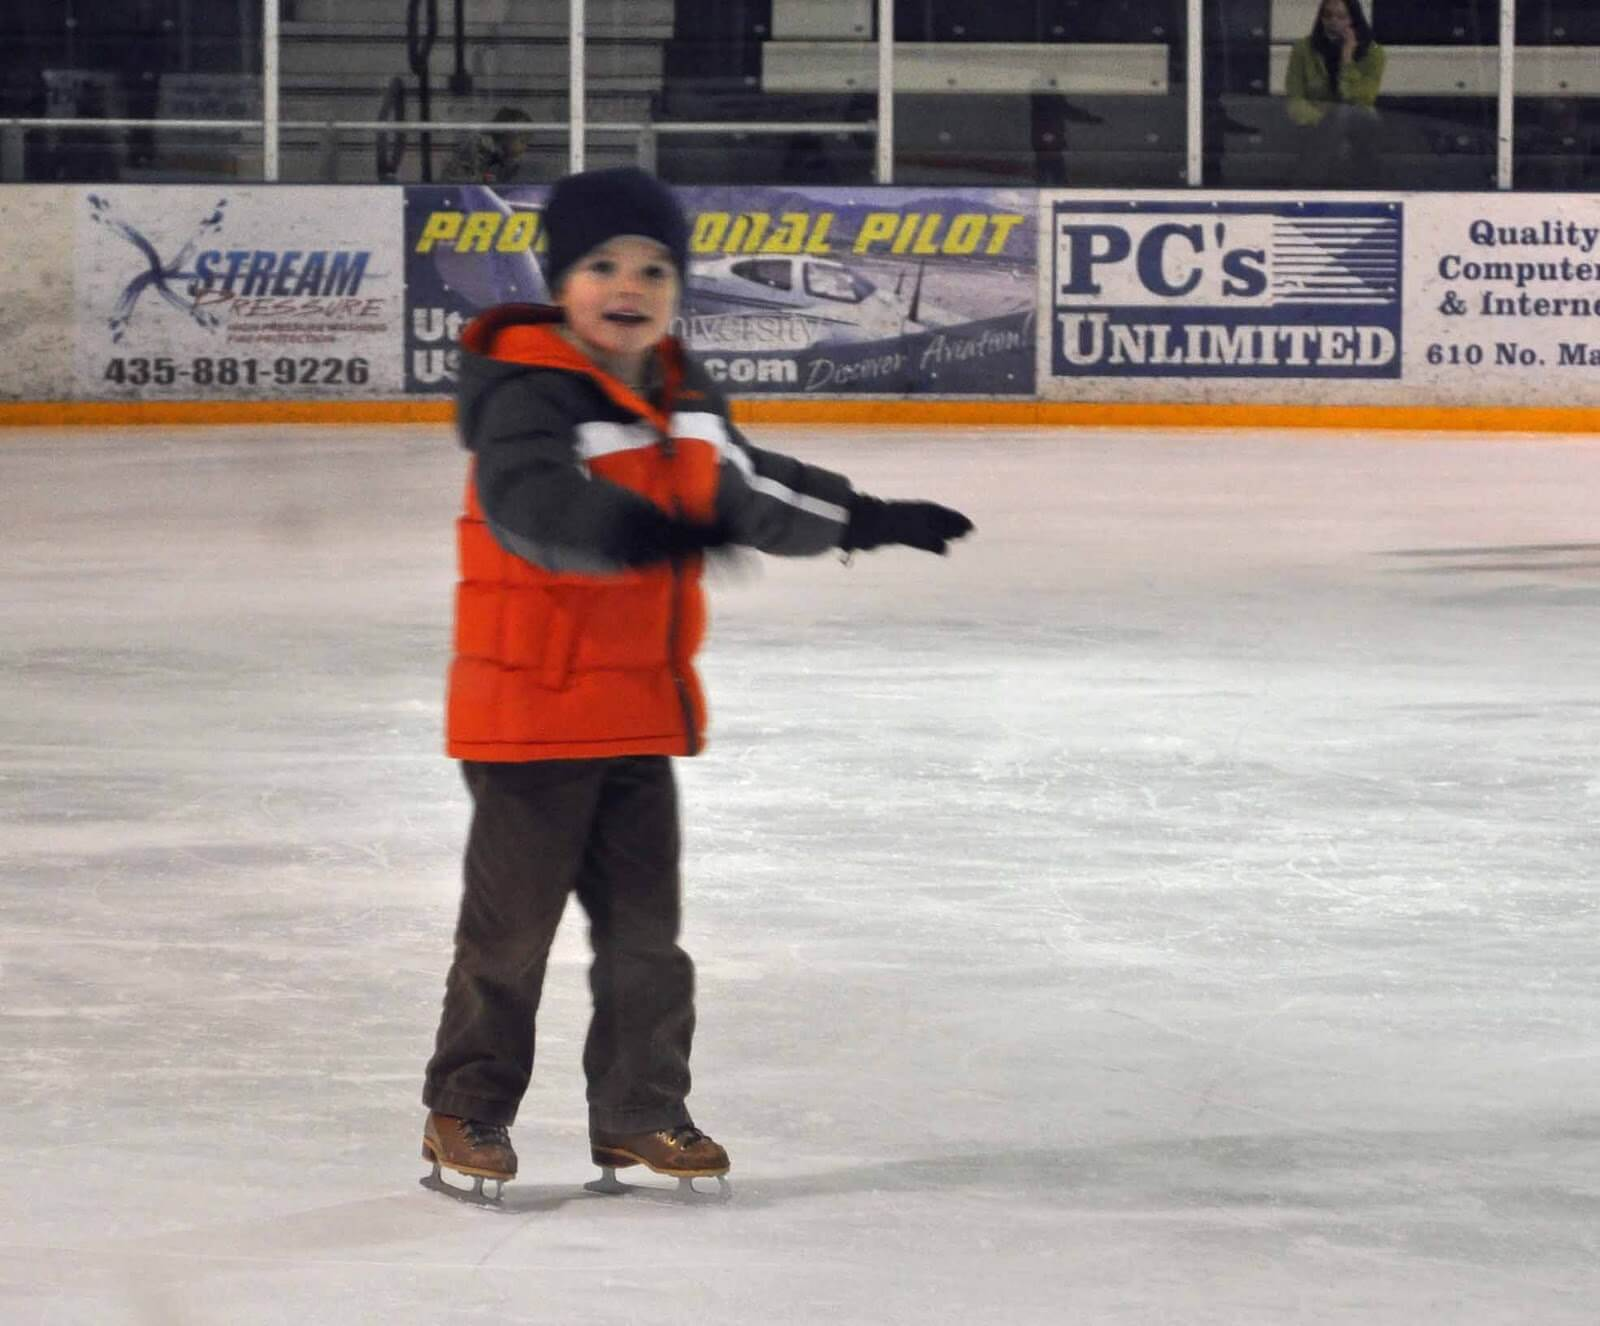 Brayden ice skating